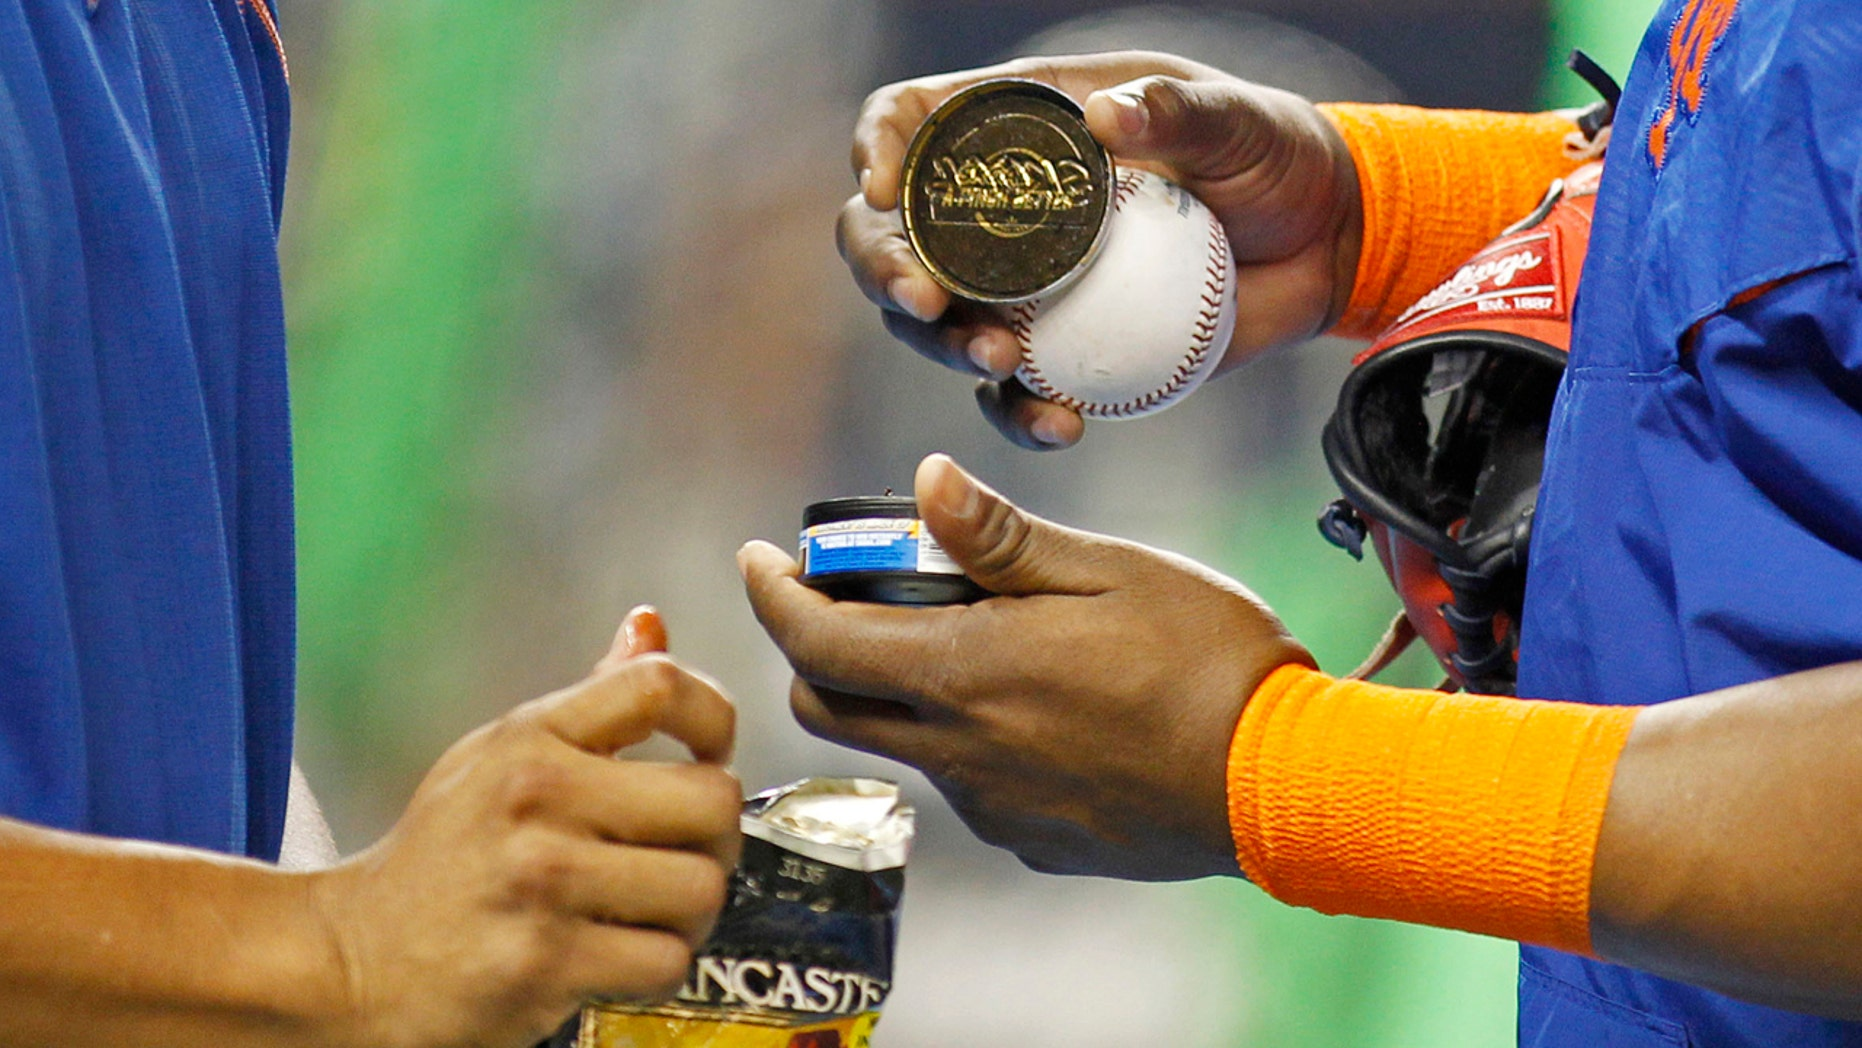 FILE - In this Sept. 5, 2015, file photo, New York Mets players hold tobacco products during batting practice before the team's baseball game against the Miami Marlins in Miami.